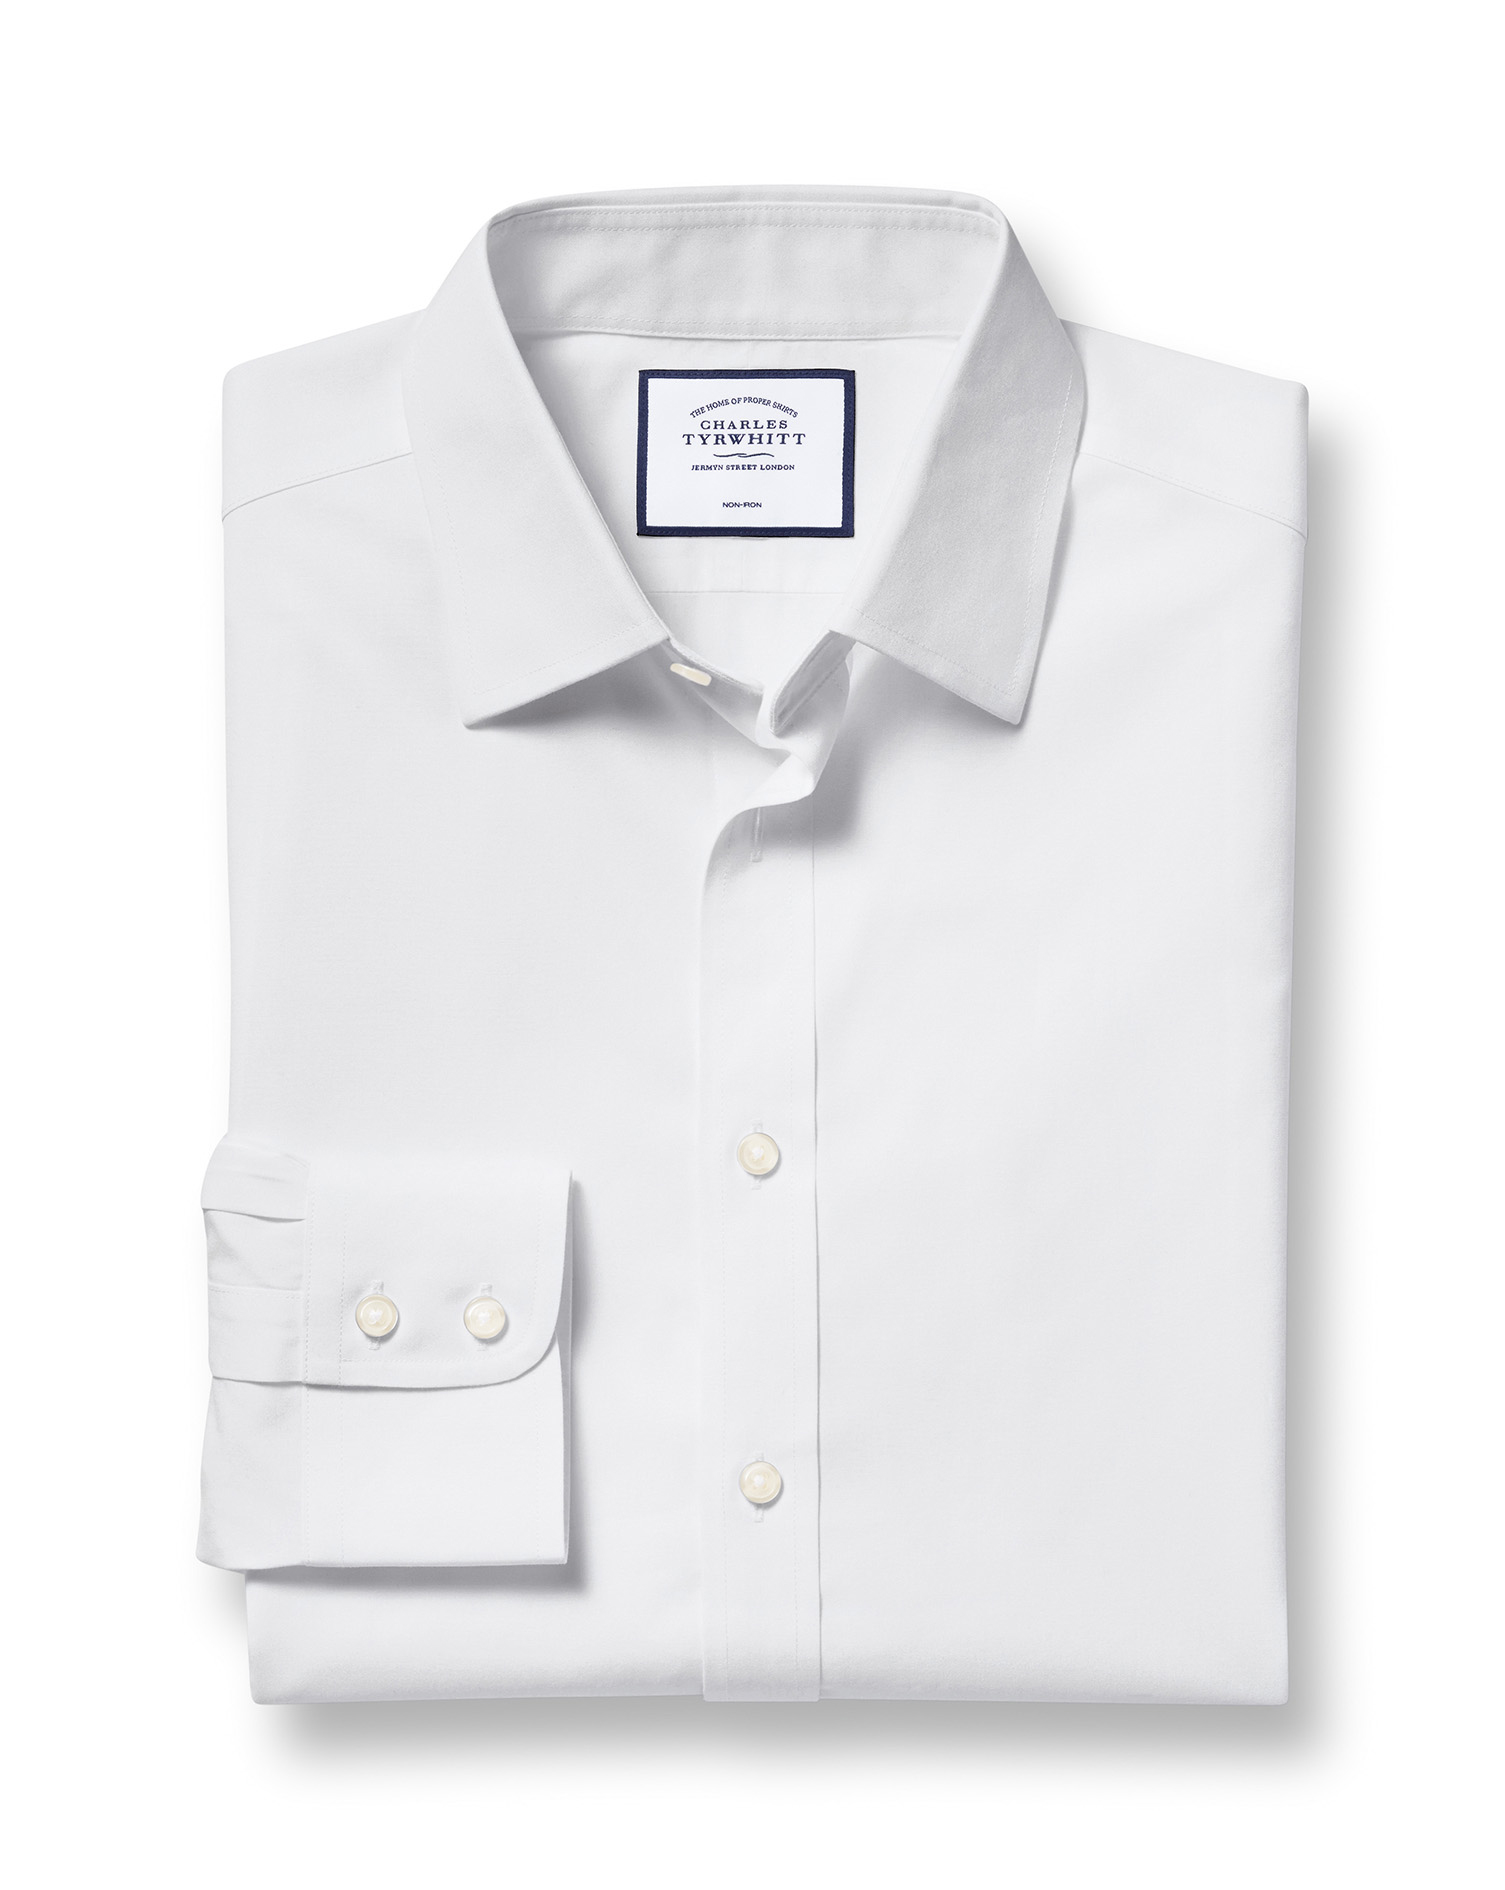 Slim Fit Non-Iron Poplin White Cotton Formal Shirt Single Cuff Size 15.5/33 by Charles Tyrwhitt